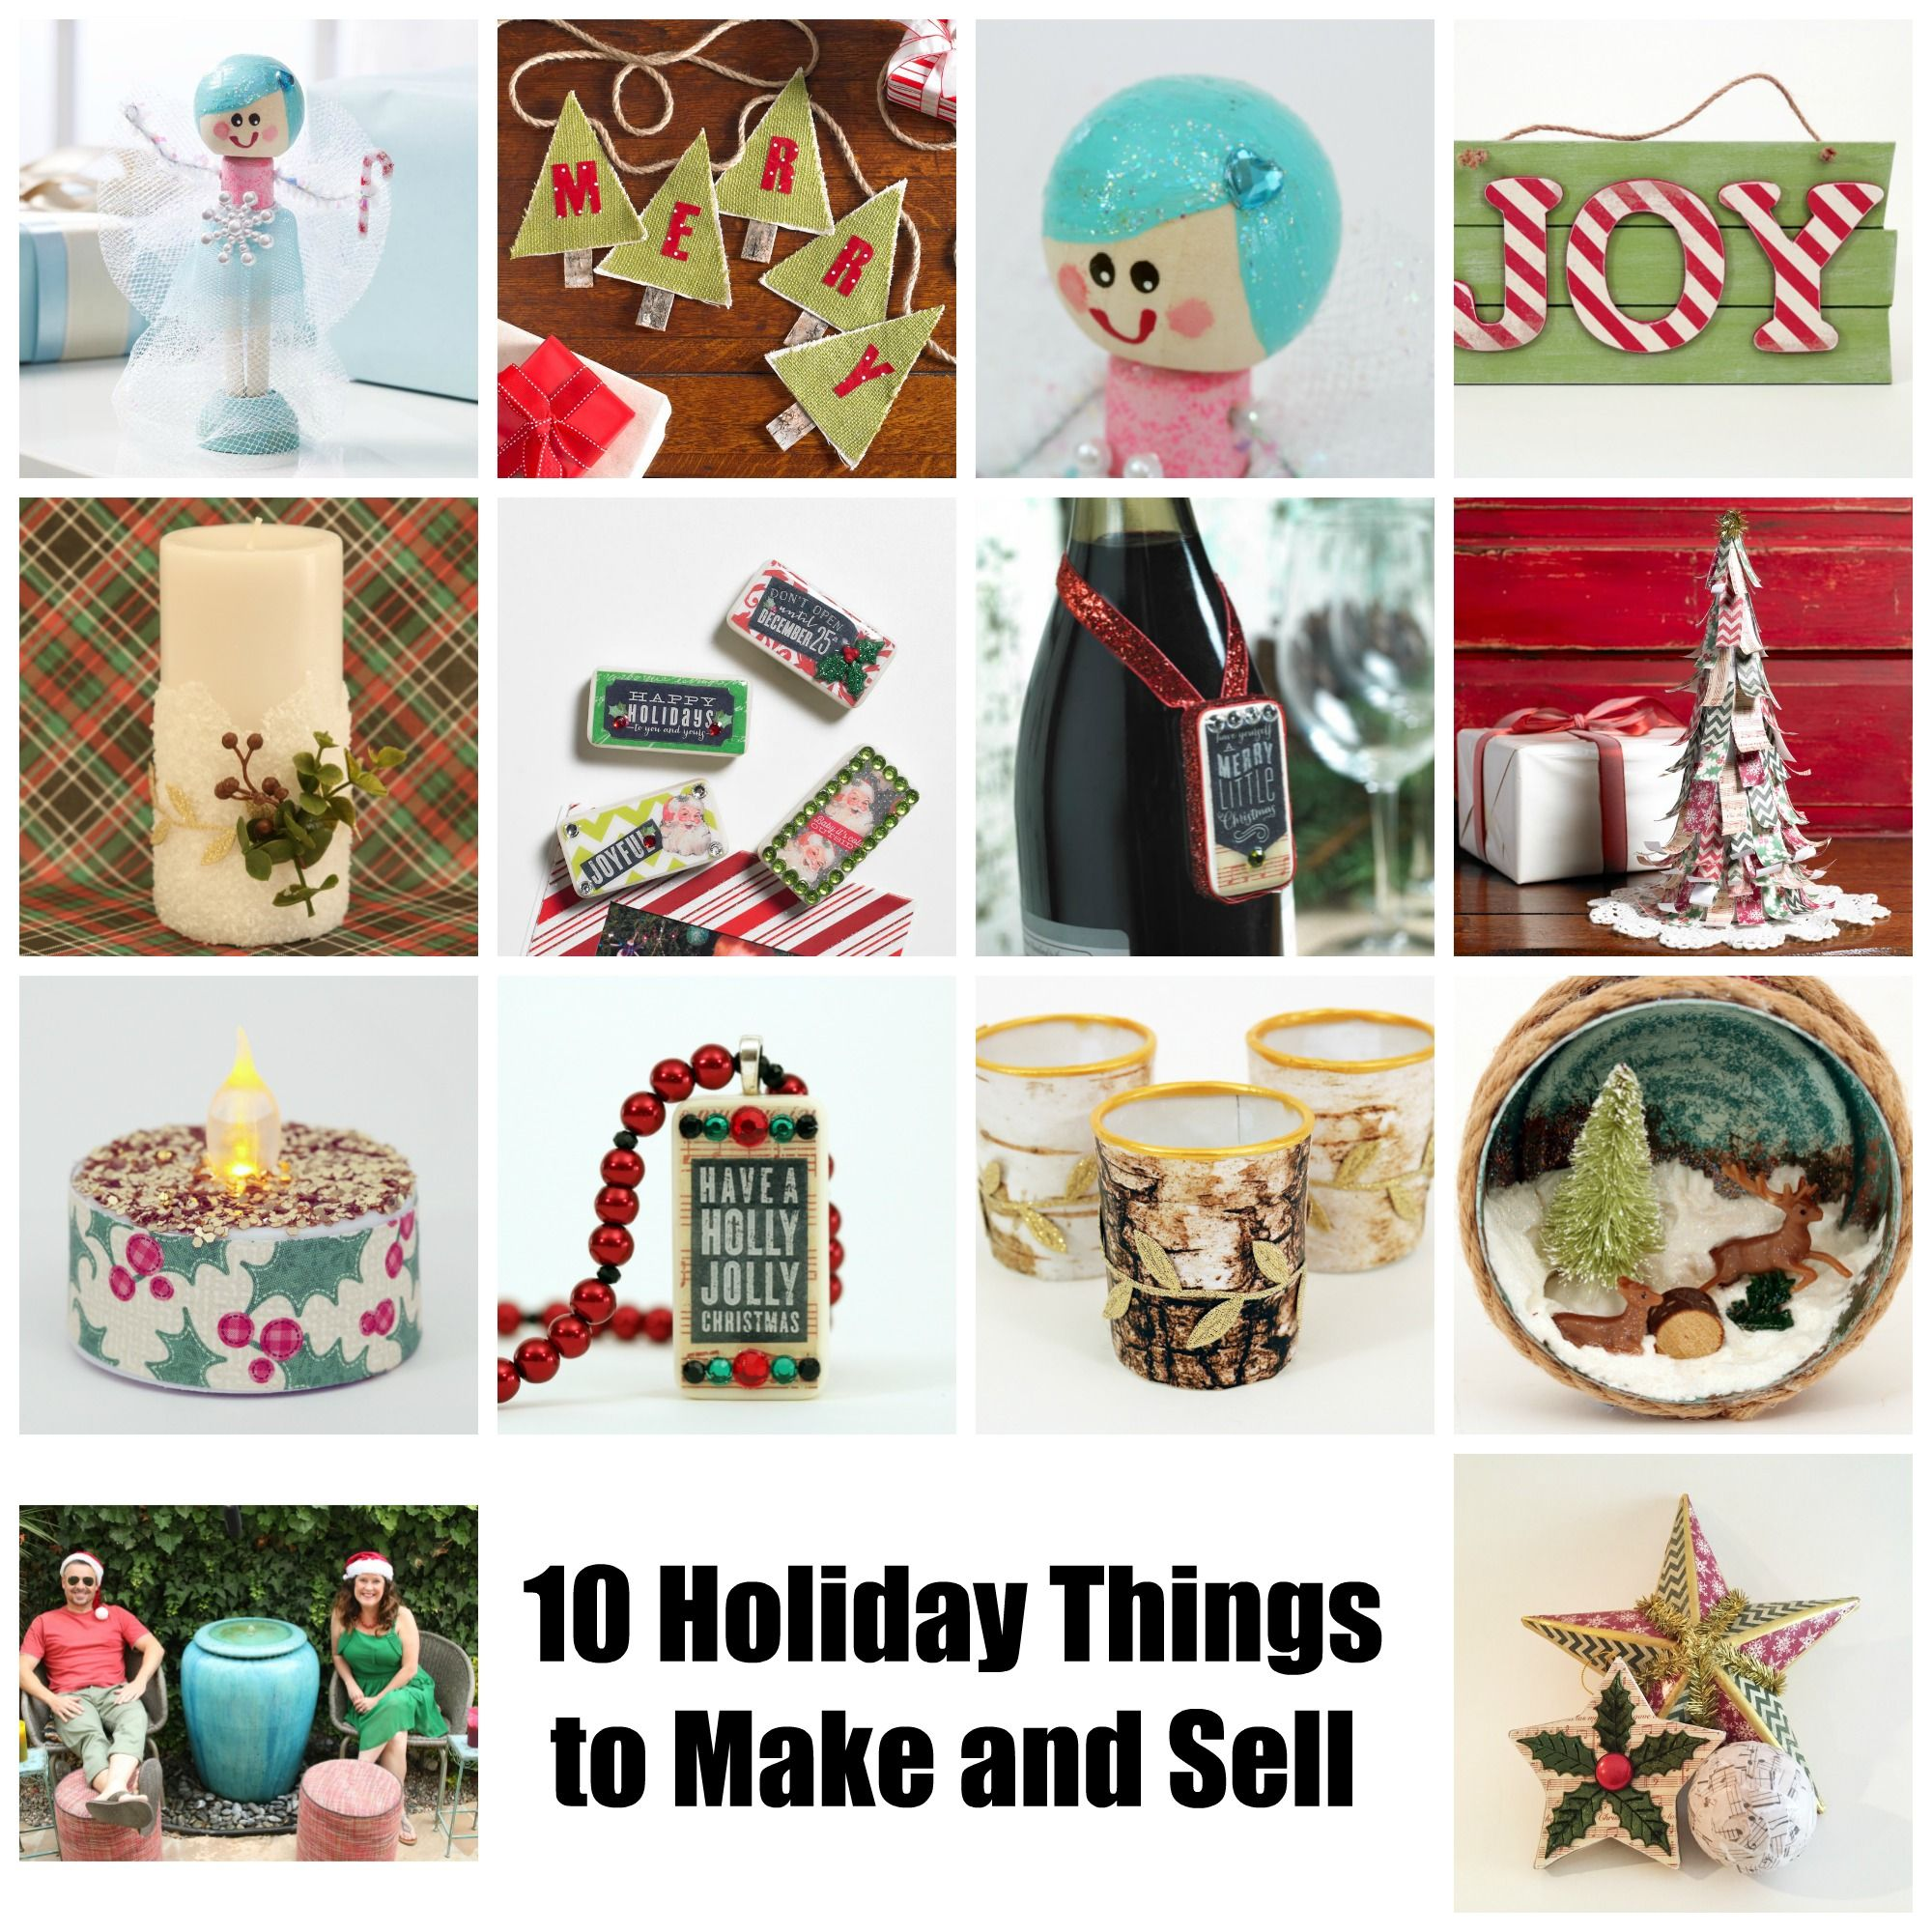 24+ Christmas crafts to make and sell ideas